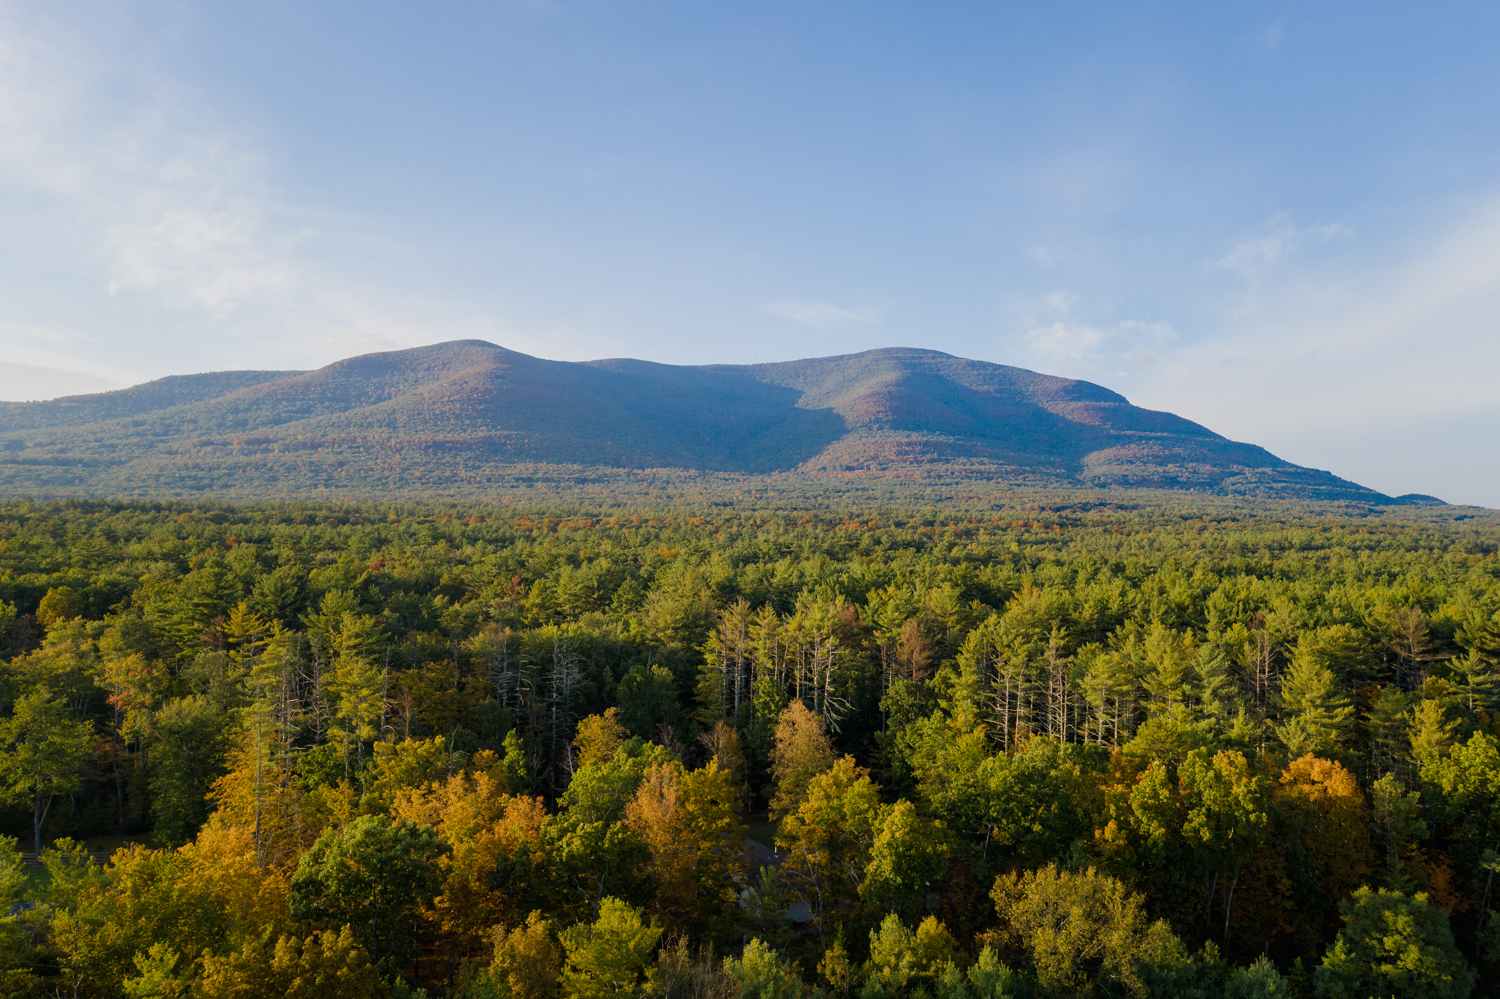 Image of bearsville mountains